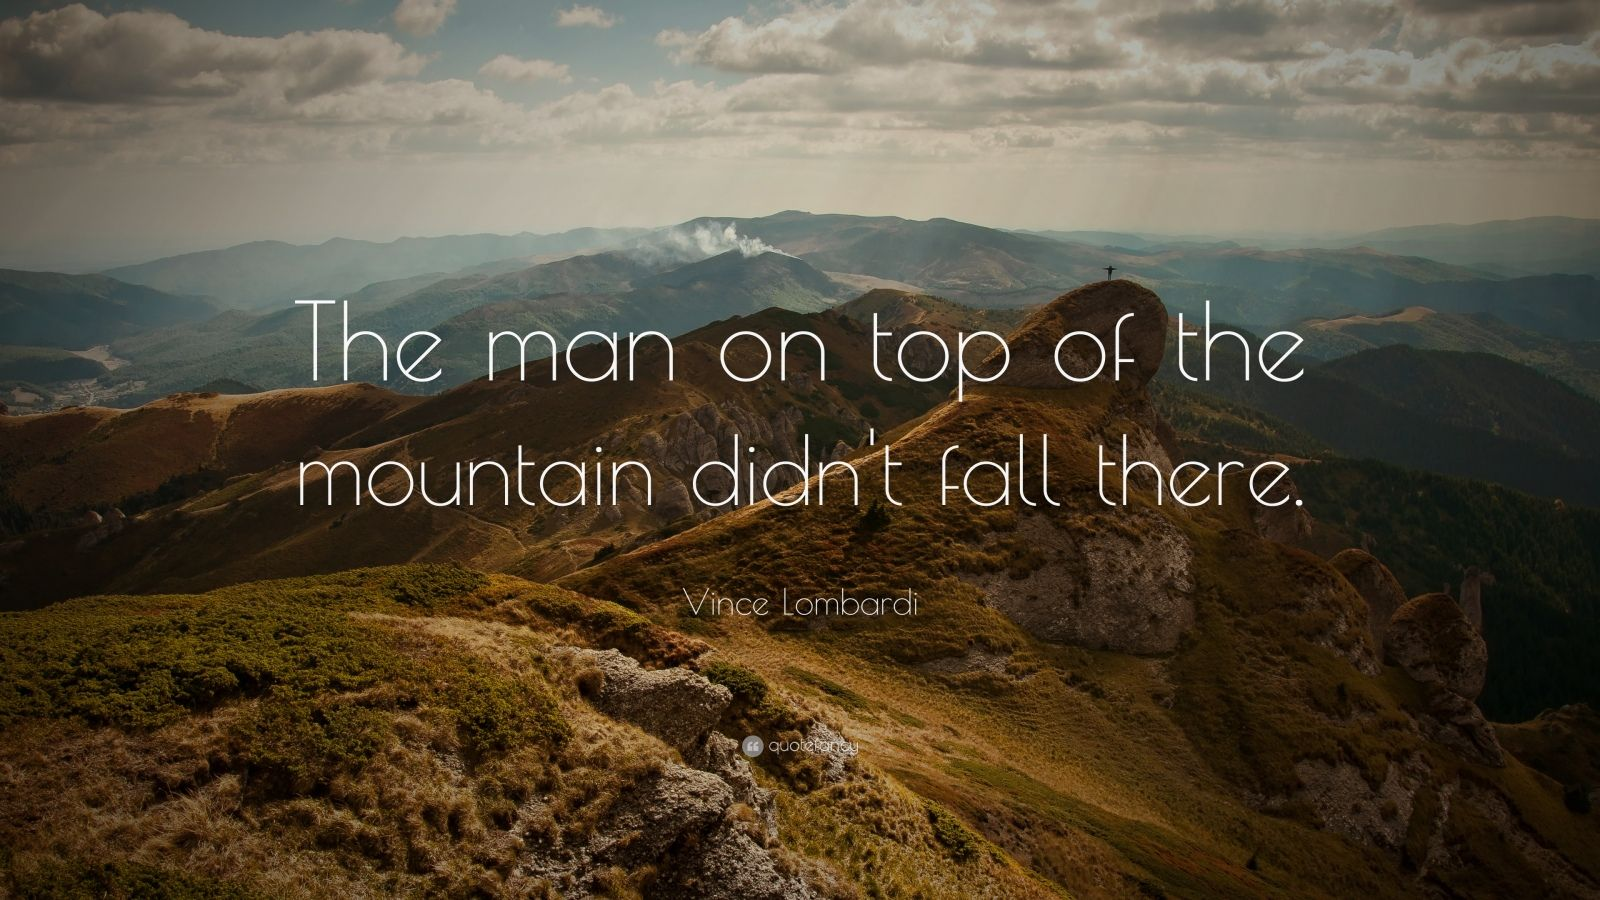 Beautiful Fall Wallpapers Vince Lombardi Quote The Man On Top Of The Mountain Didn